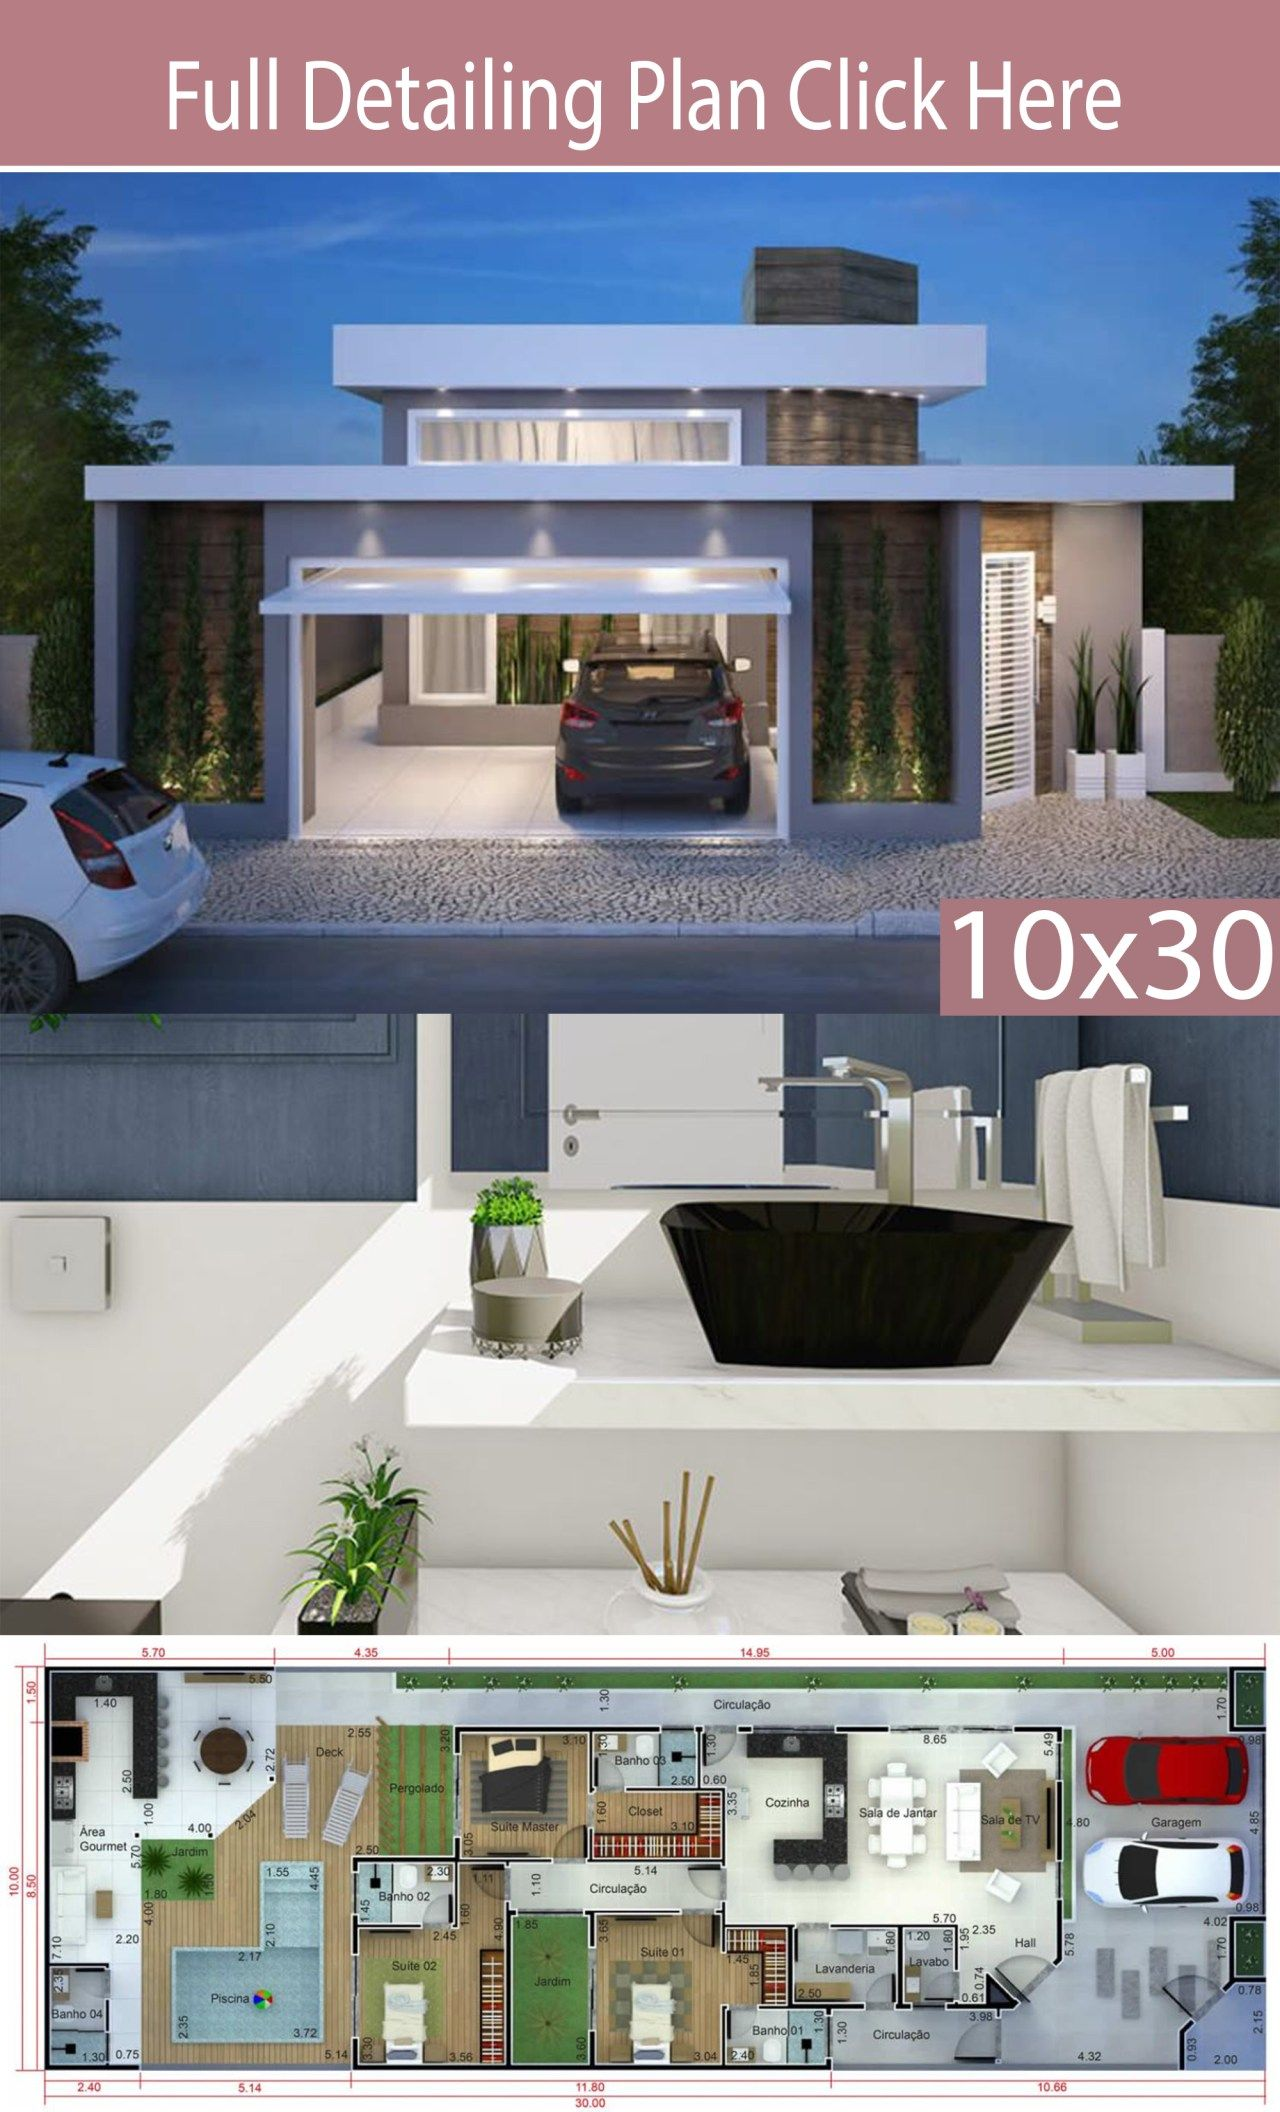 Home Design 10x30m With 3 Bedrooms Home Ideas Bungalow House Design Small House Design Plans House Outside Design